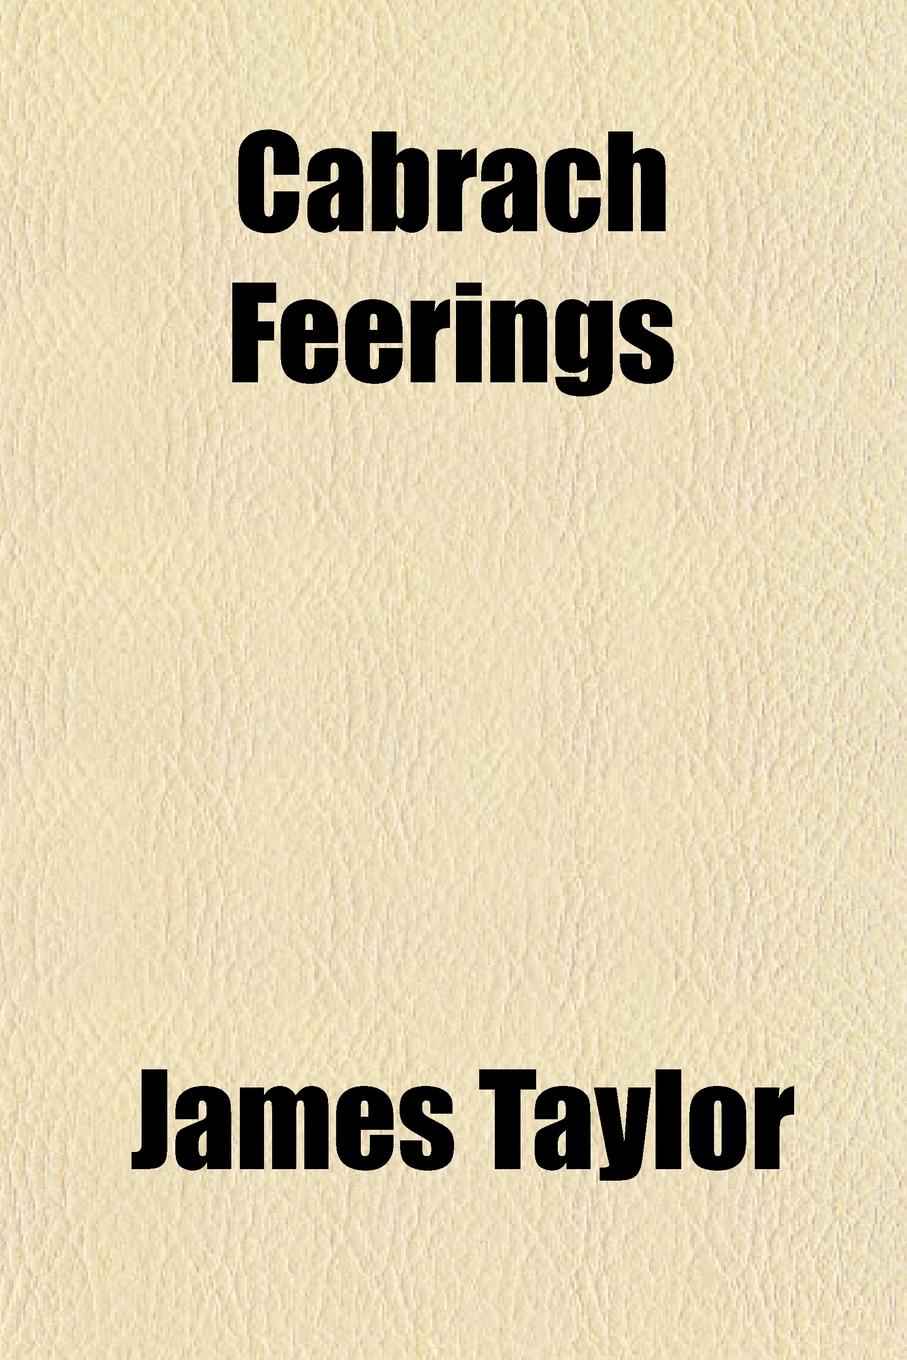 James Taylor Cabrach Feerings